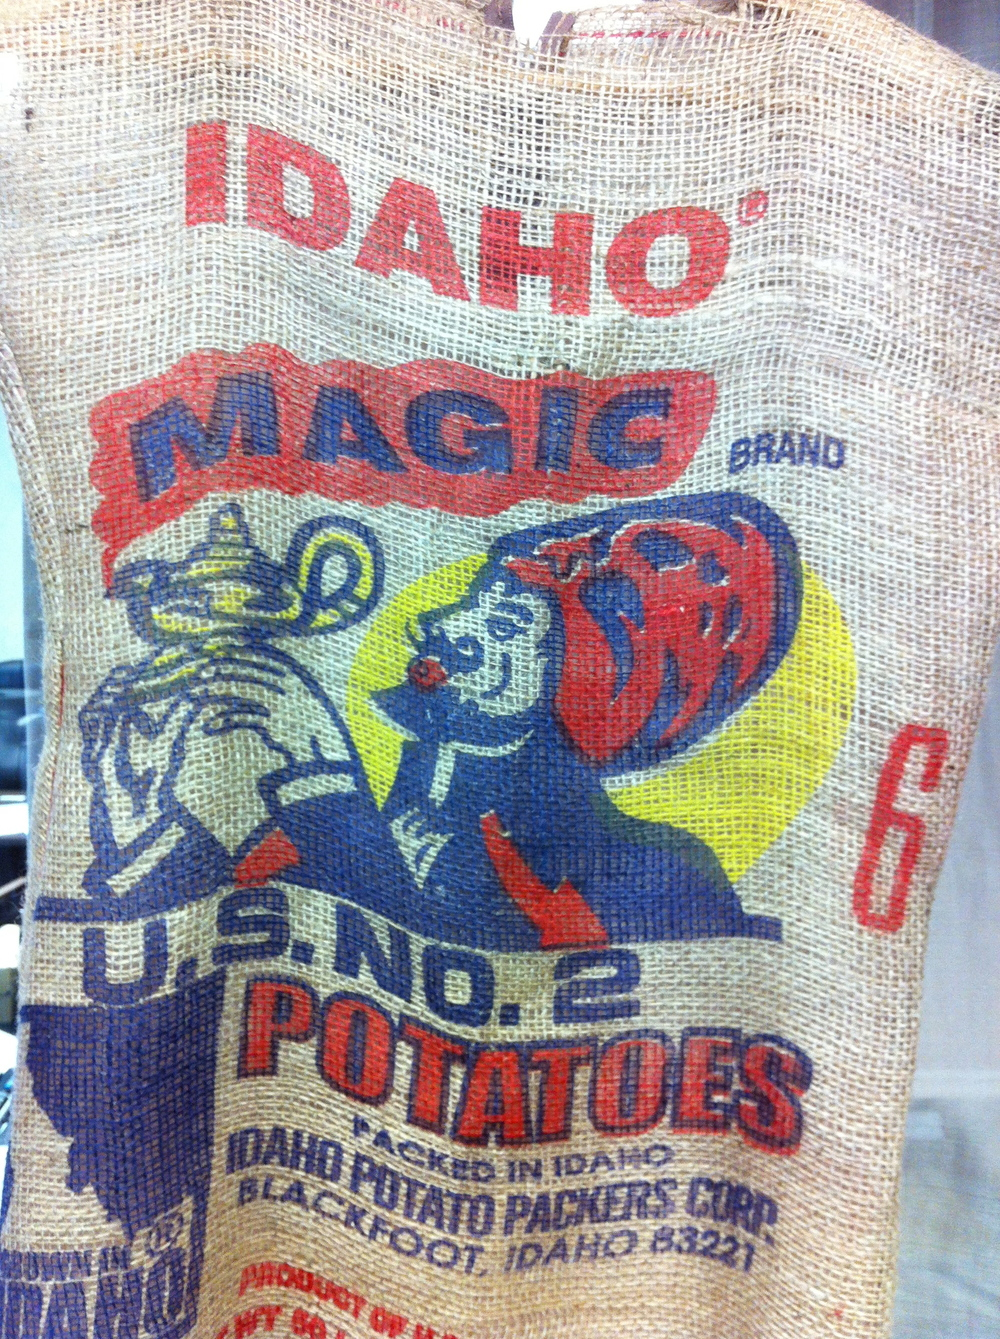 We both enjoyed the names and graphics of the potato sacks.